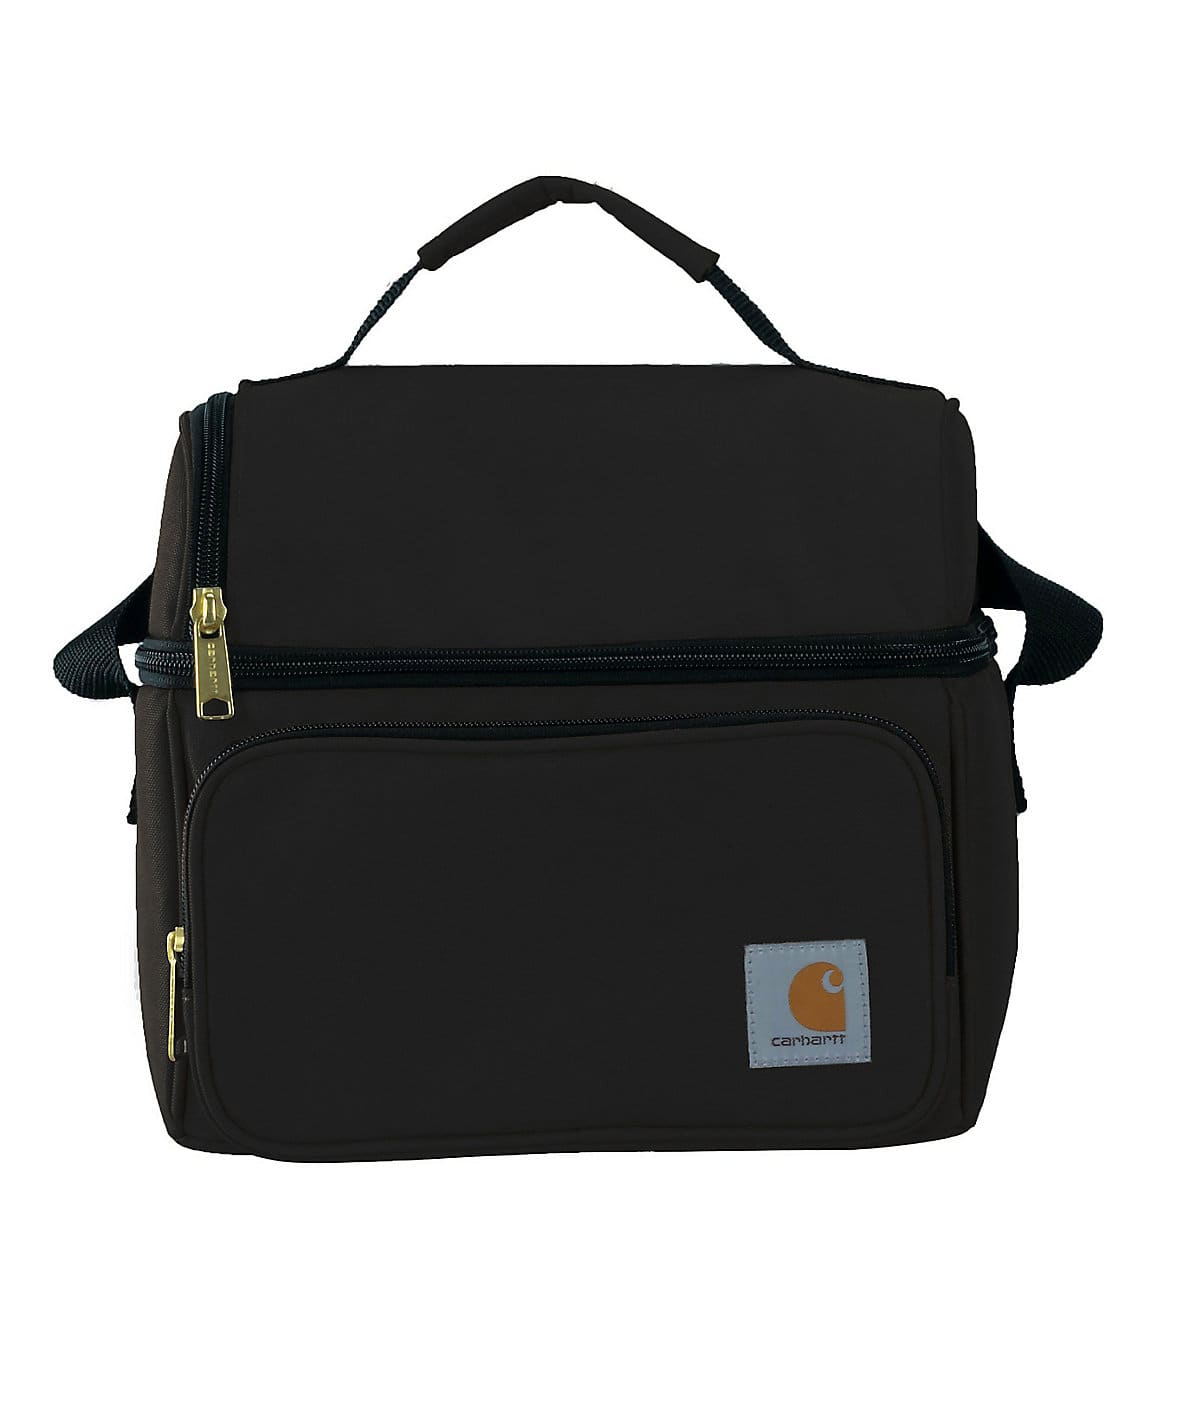 219e80aed217 Unisex Deluxe Lunch Cooler 358100B | Carhartt